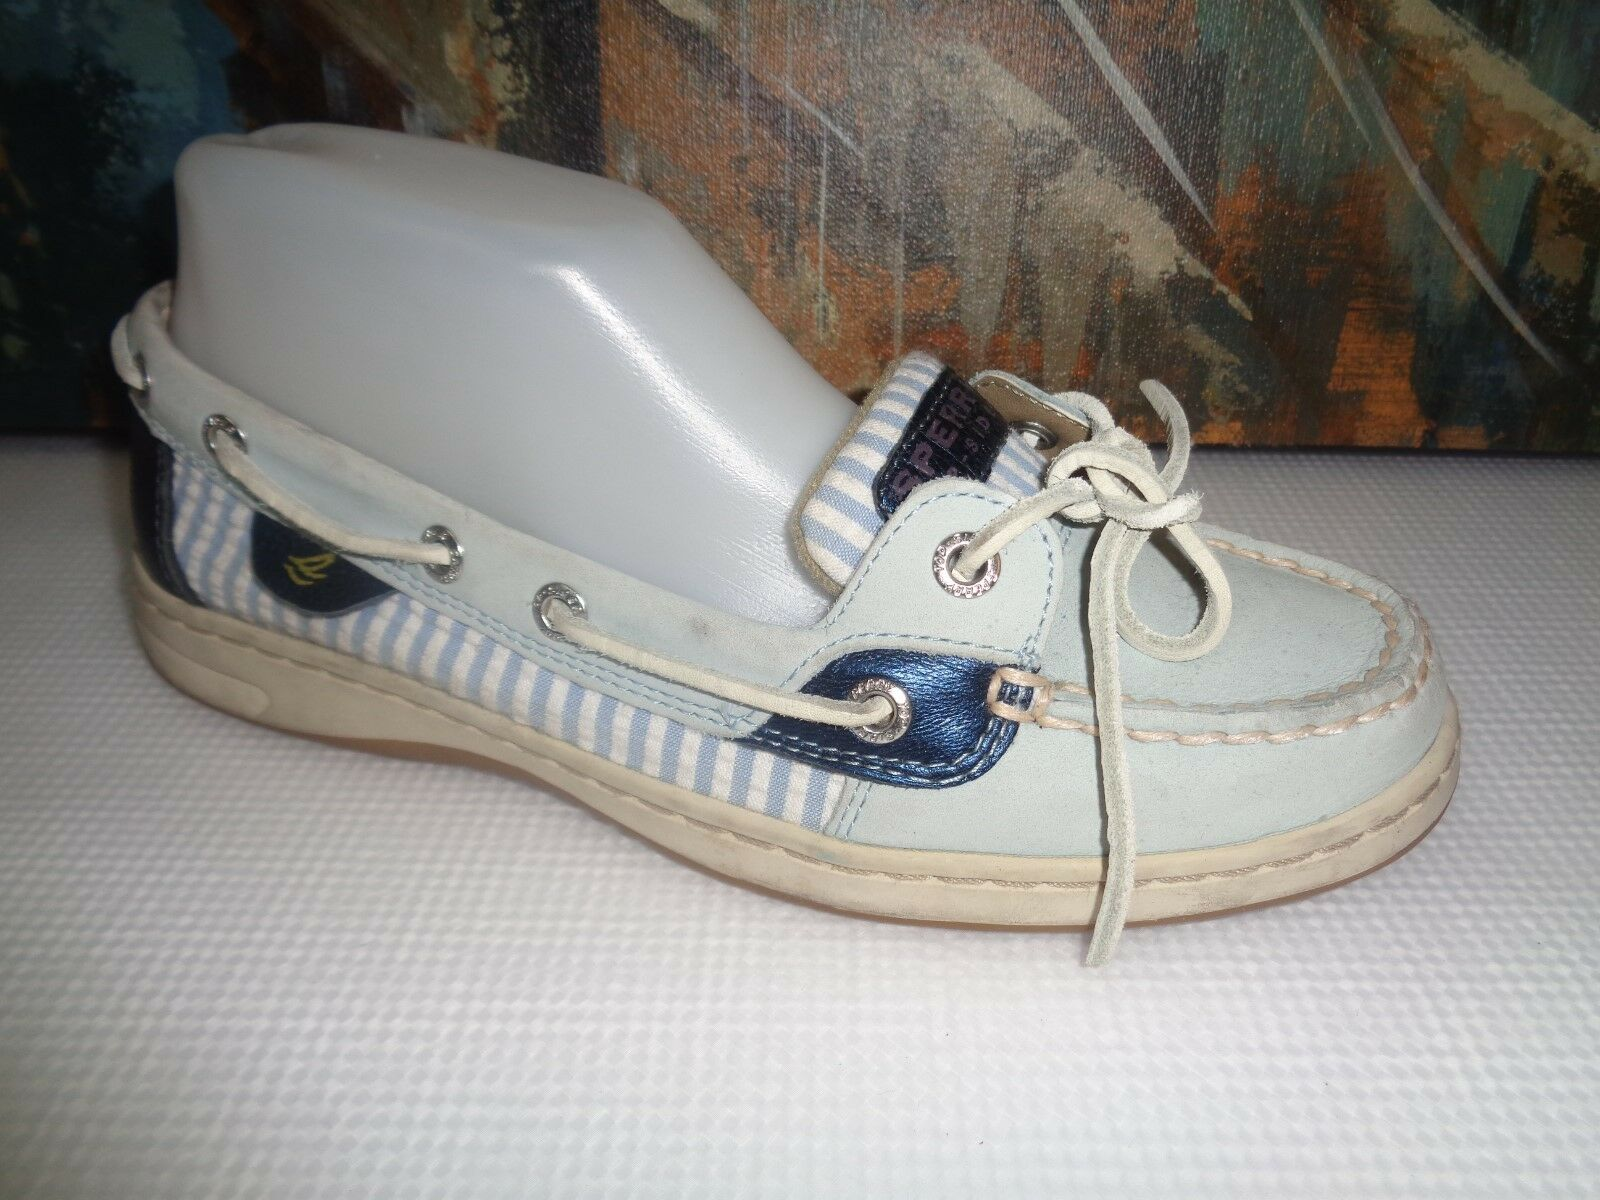 SPERRY TOPSIDER Billfish Women's Baby bluee Silver White casual boat shoes 7.5M